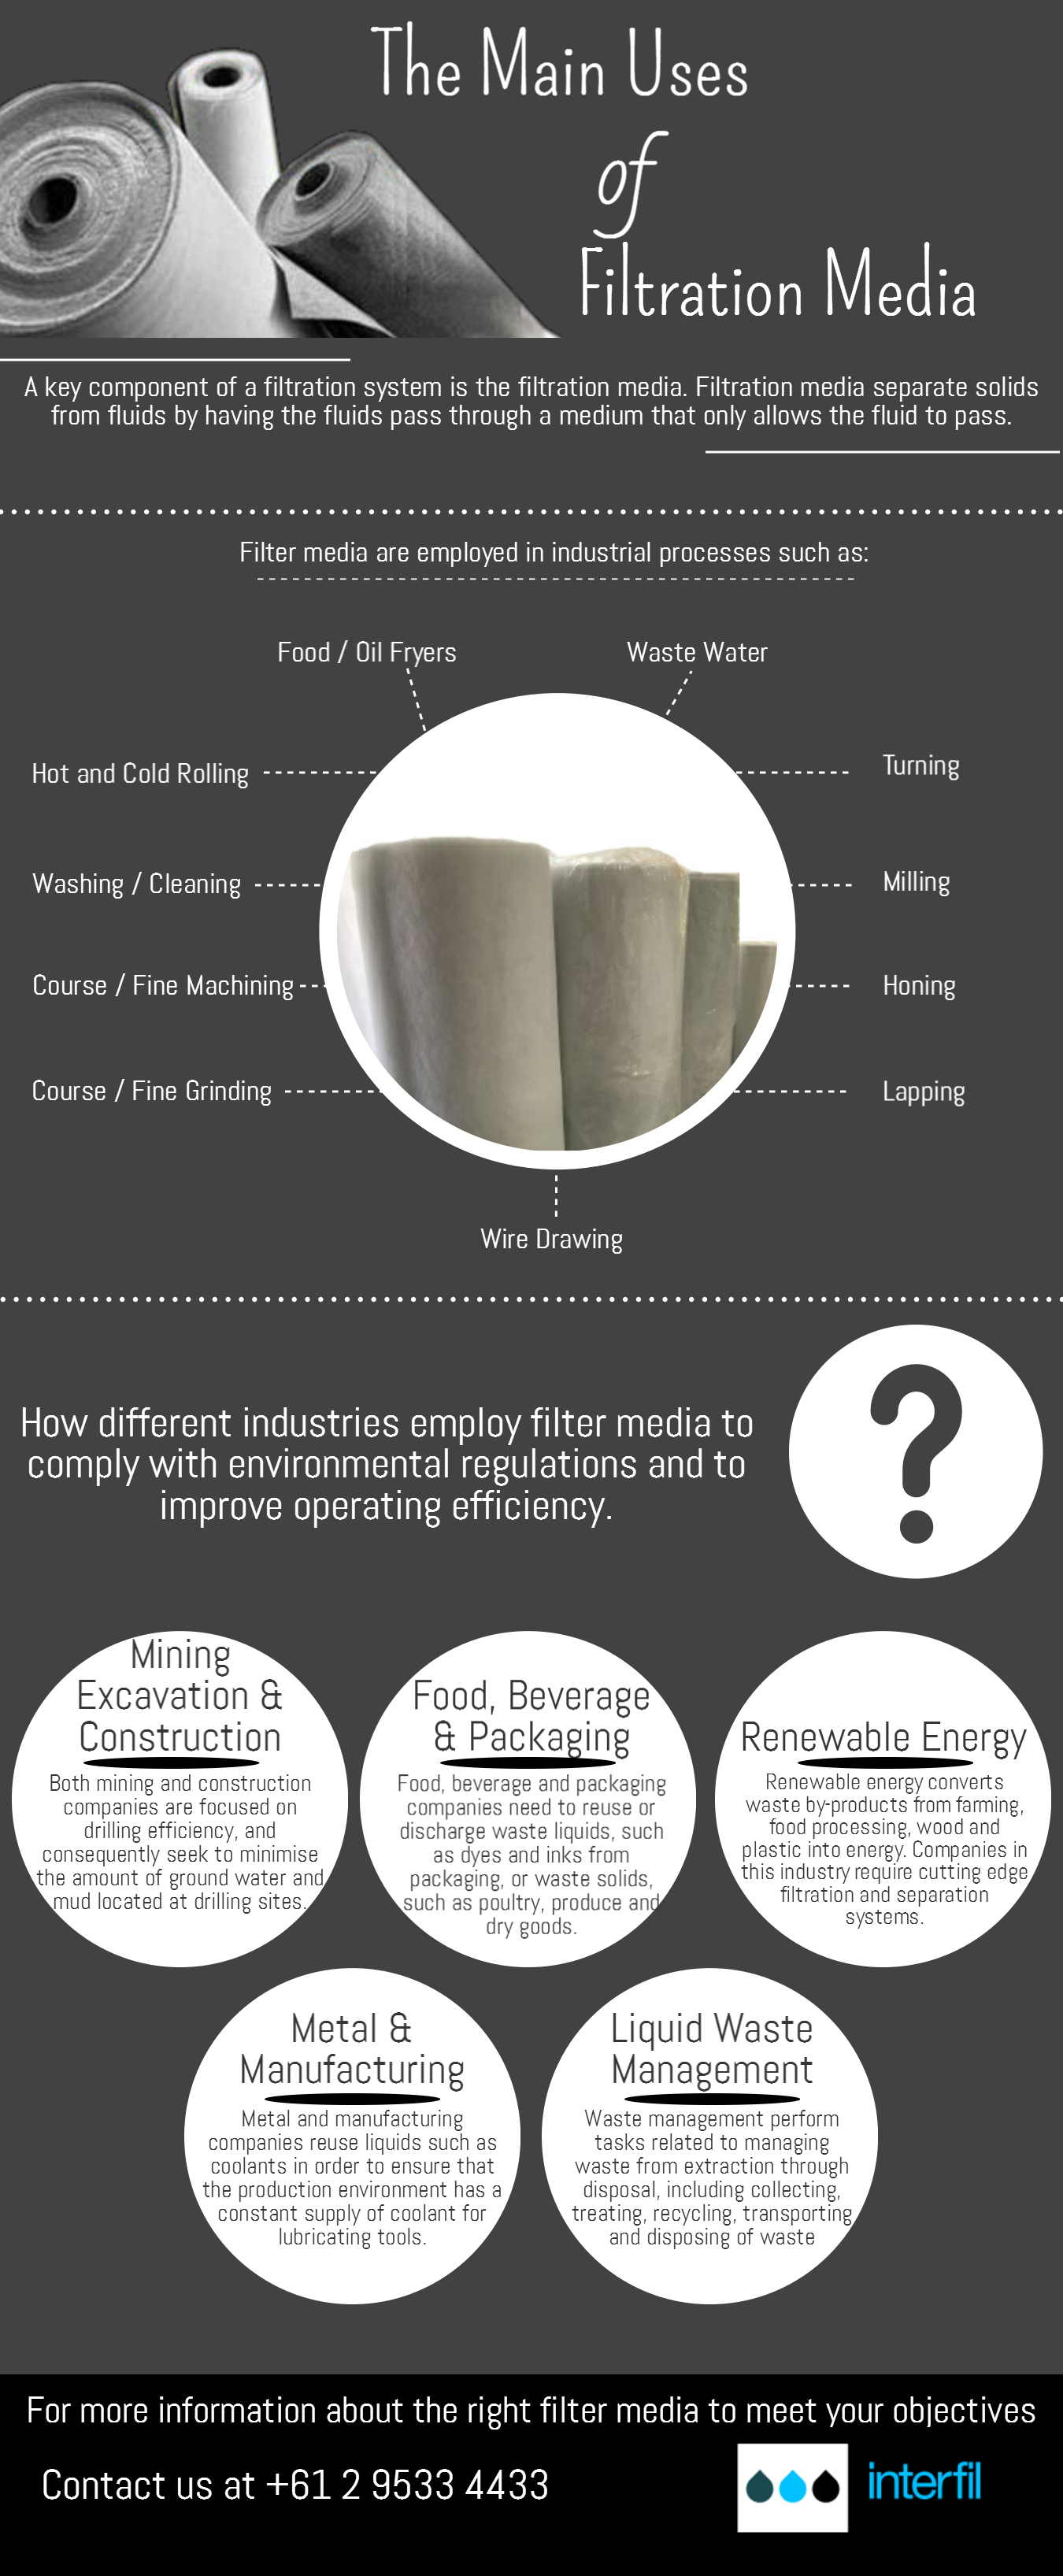 The main uses of filtration media